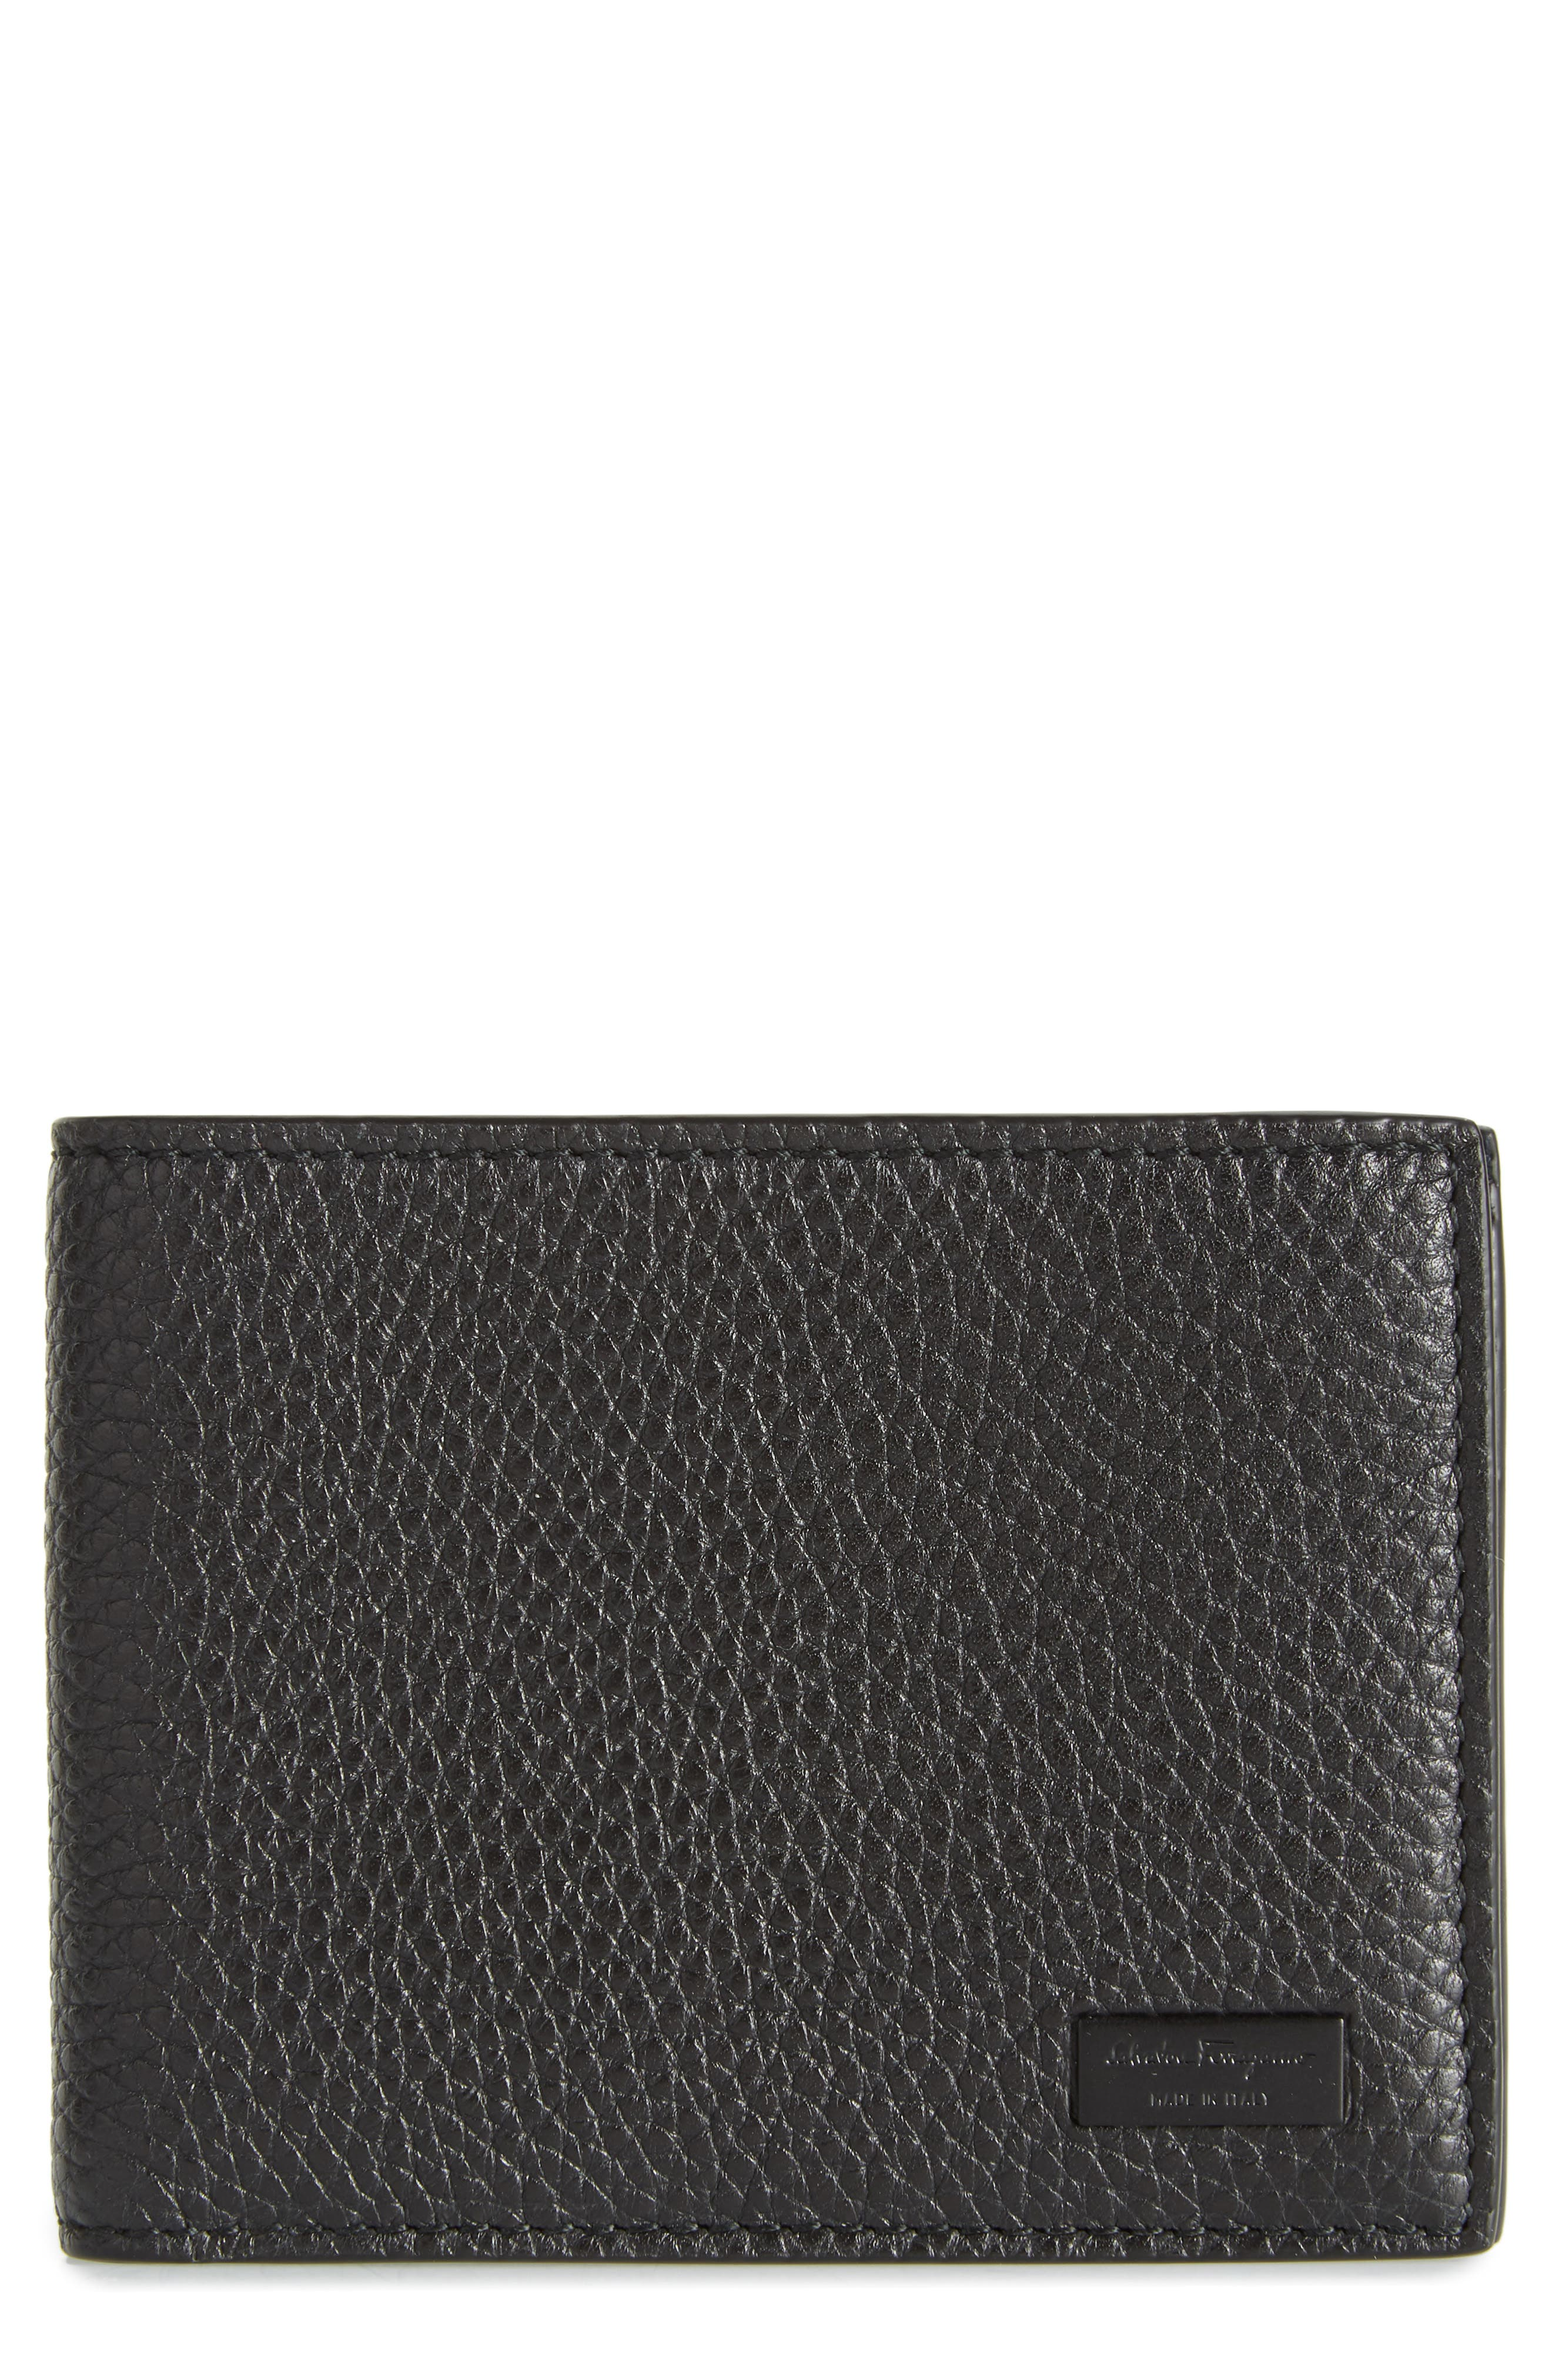 New Firenze Leather Wallet,                             Main thumbnail 1, color,                             NERO